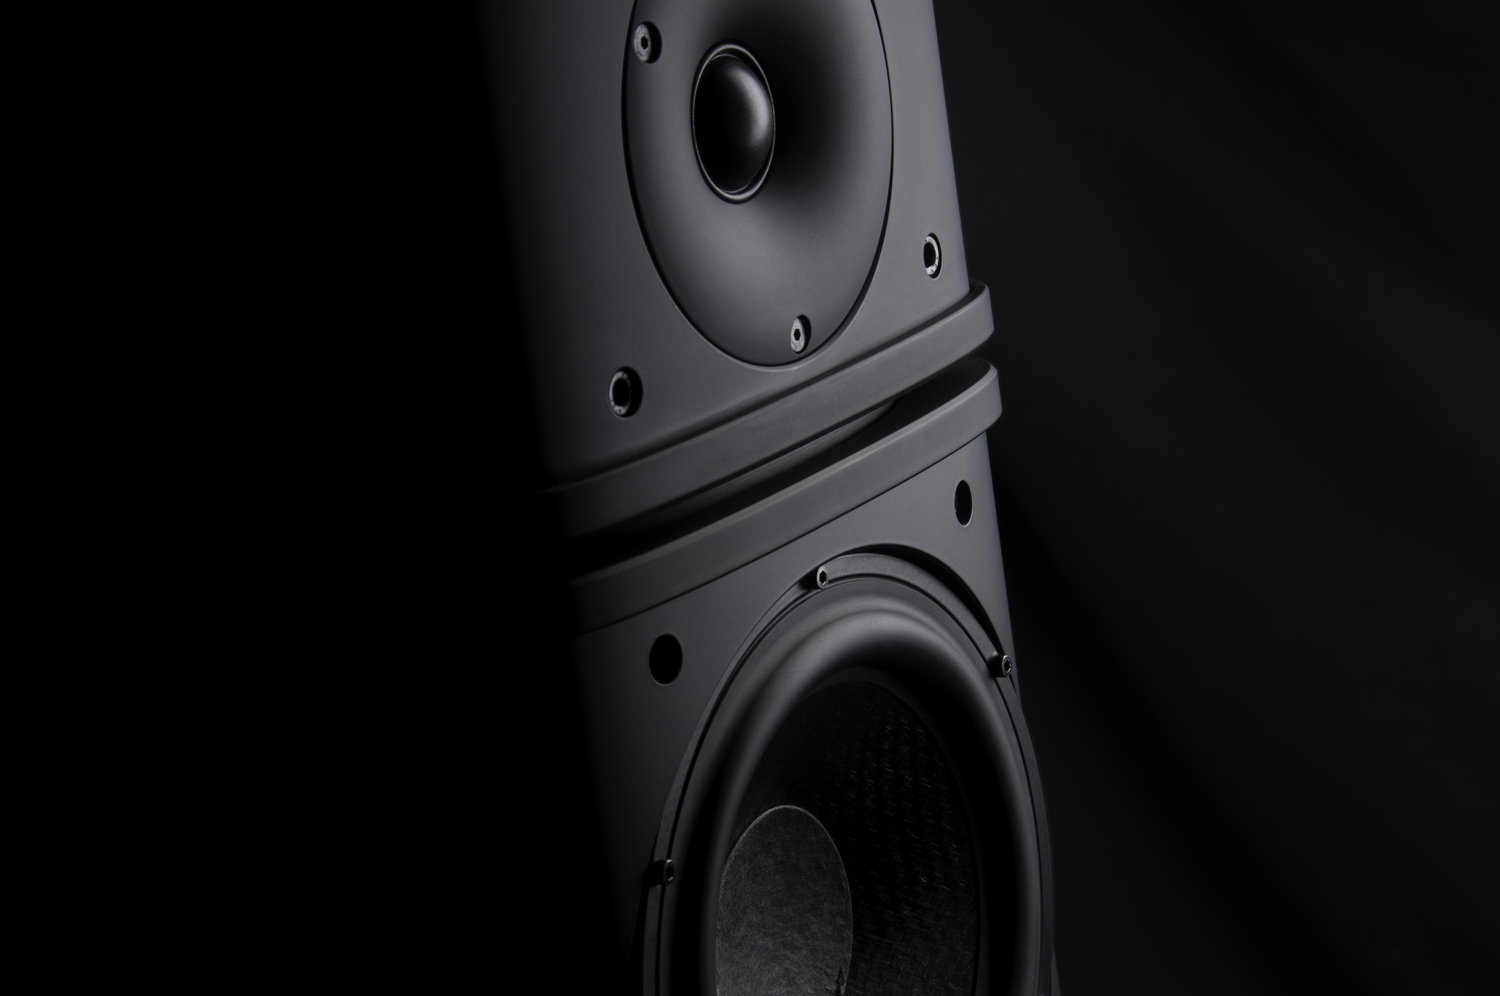 Wilson Benesch - Cardinal Loudspeaker - Geometry Series - theaudiobeat.com - Roy Gregory - Manufacturing - Carbon Fiber - Advanced - Composite